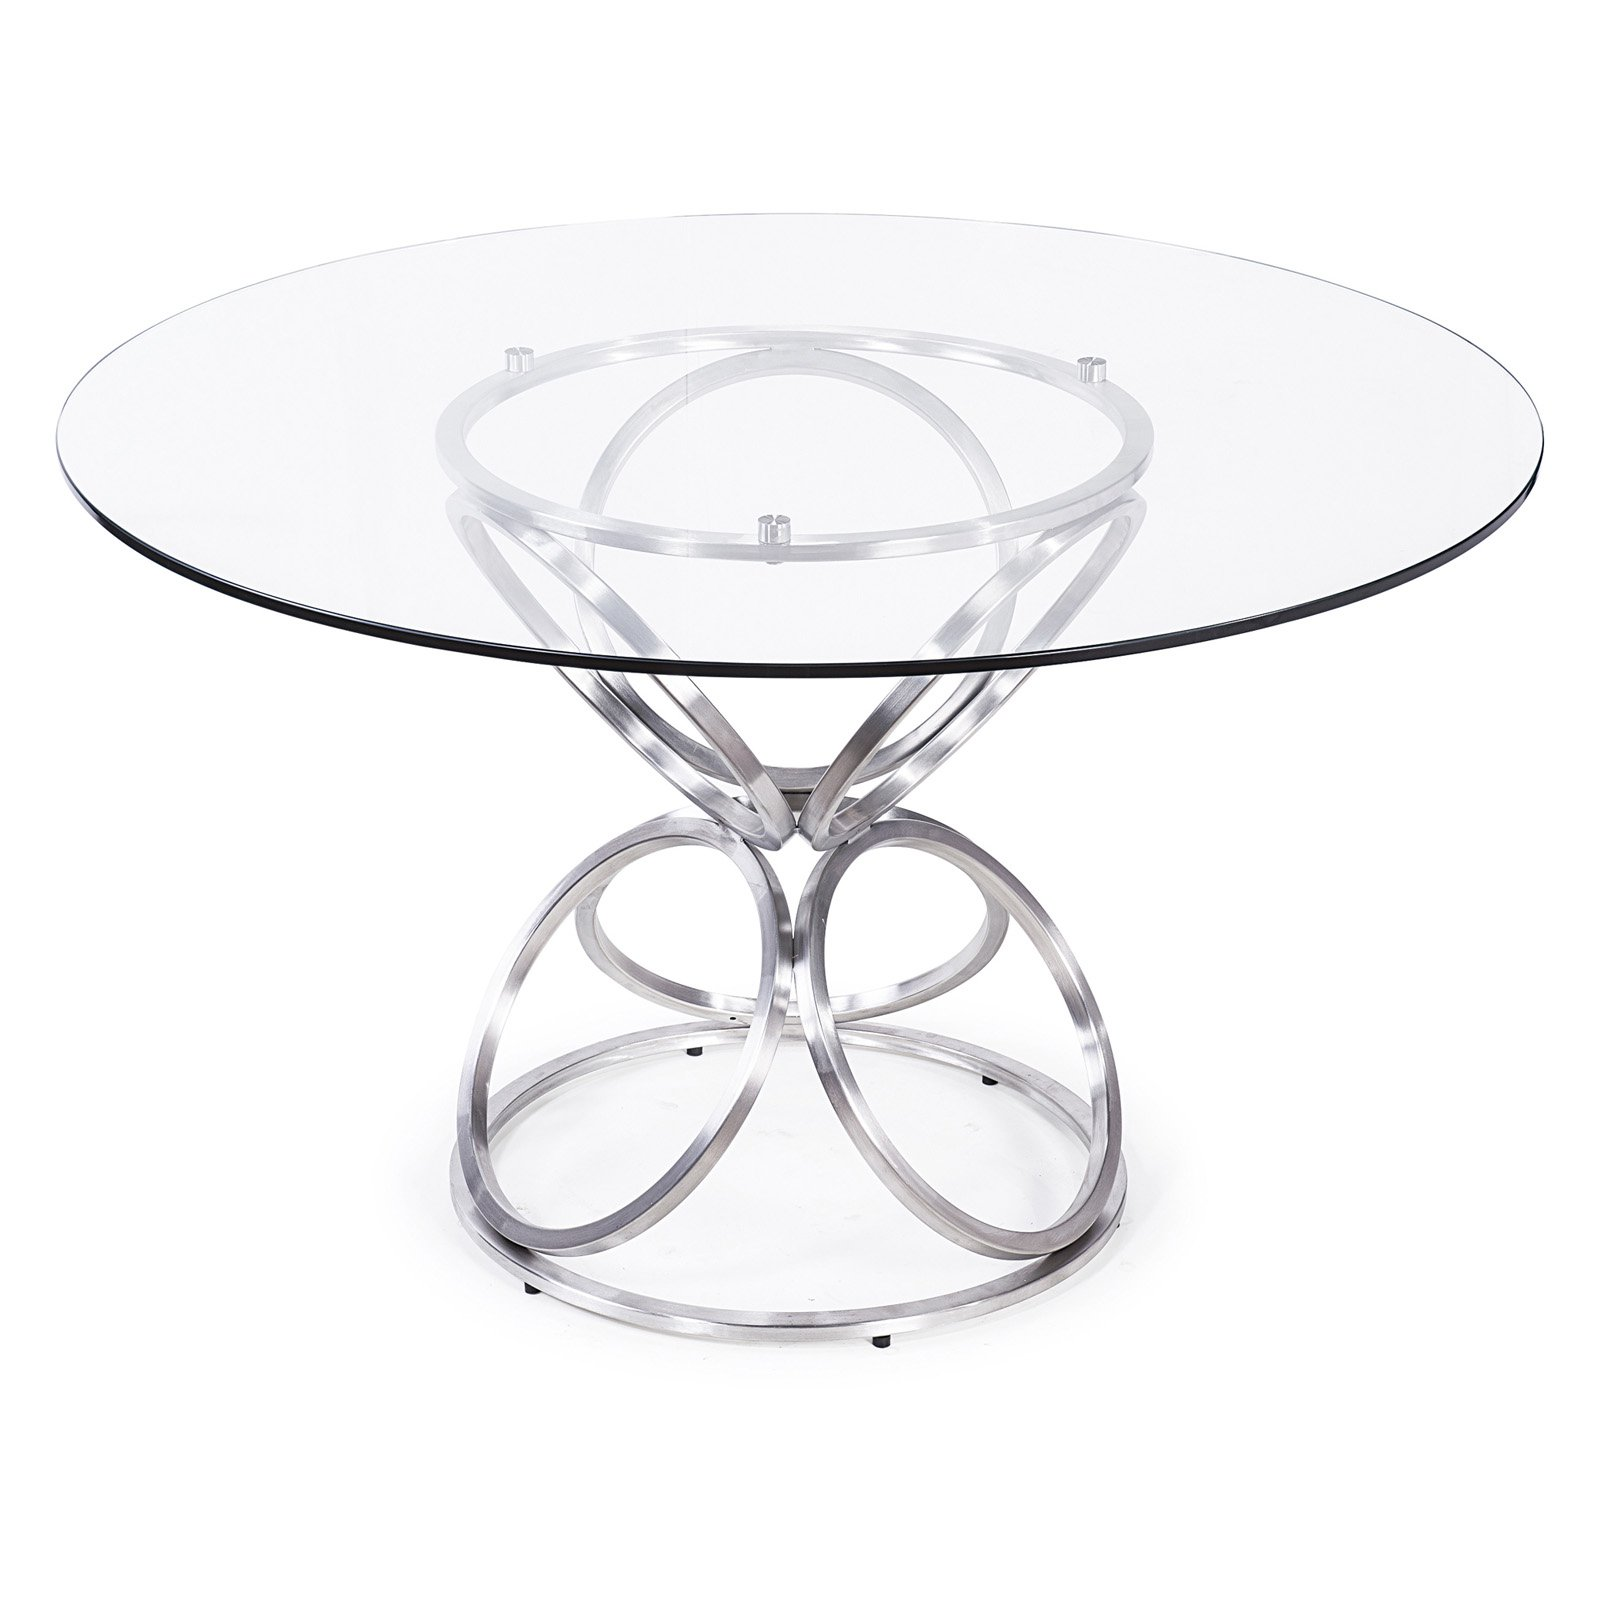 Armen Living Brooke Round Dining Table by Armen Living